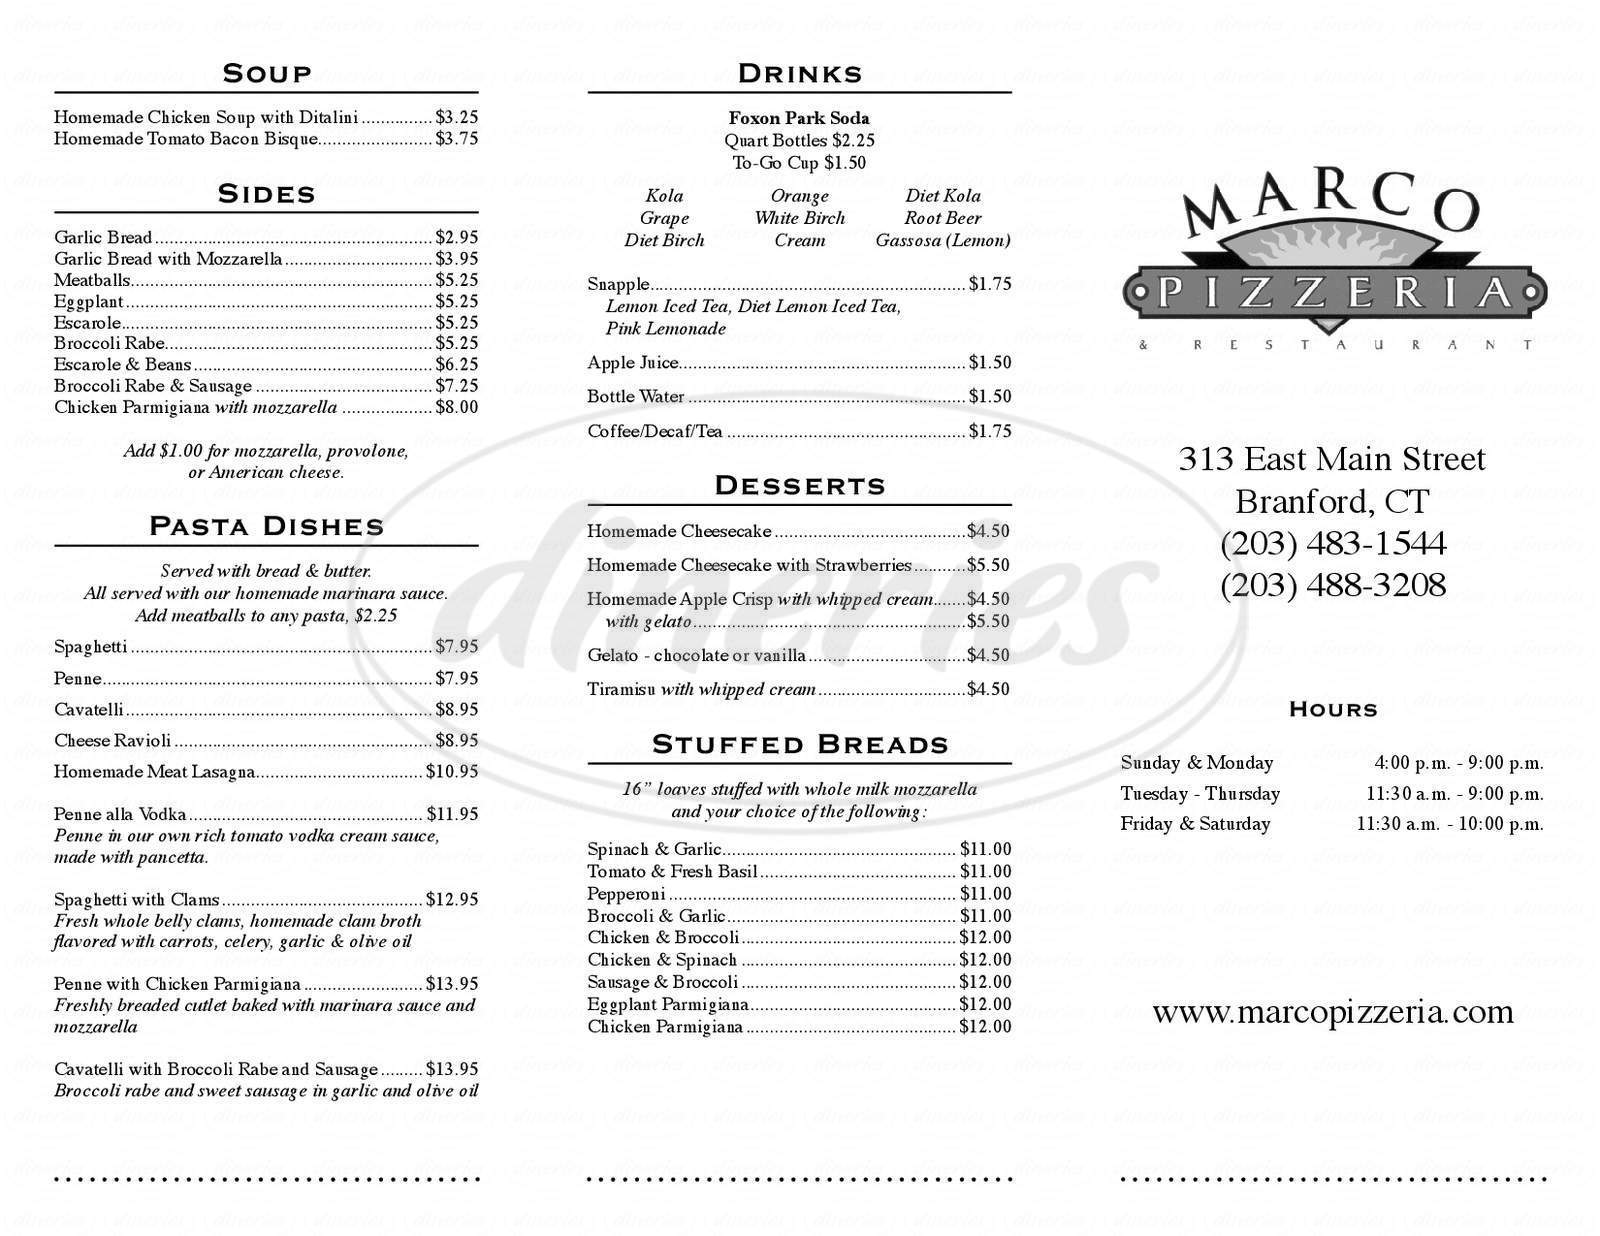 menu for Marco's Pizzeria